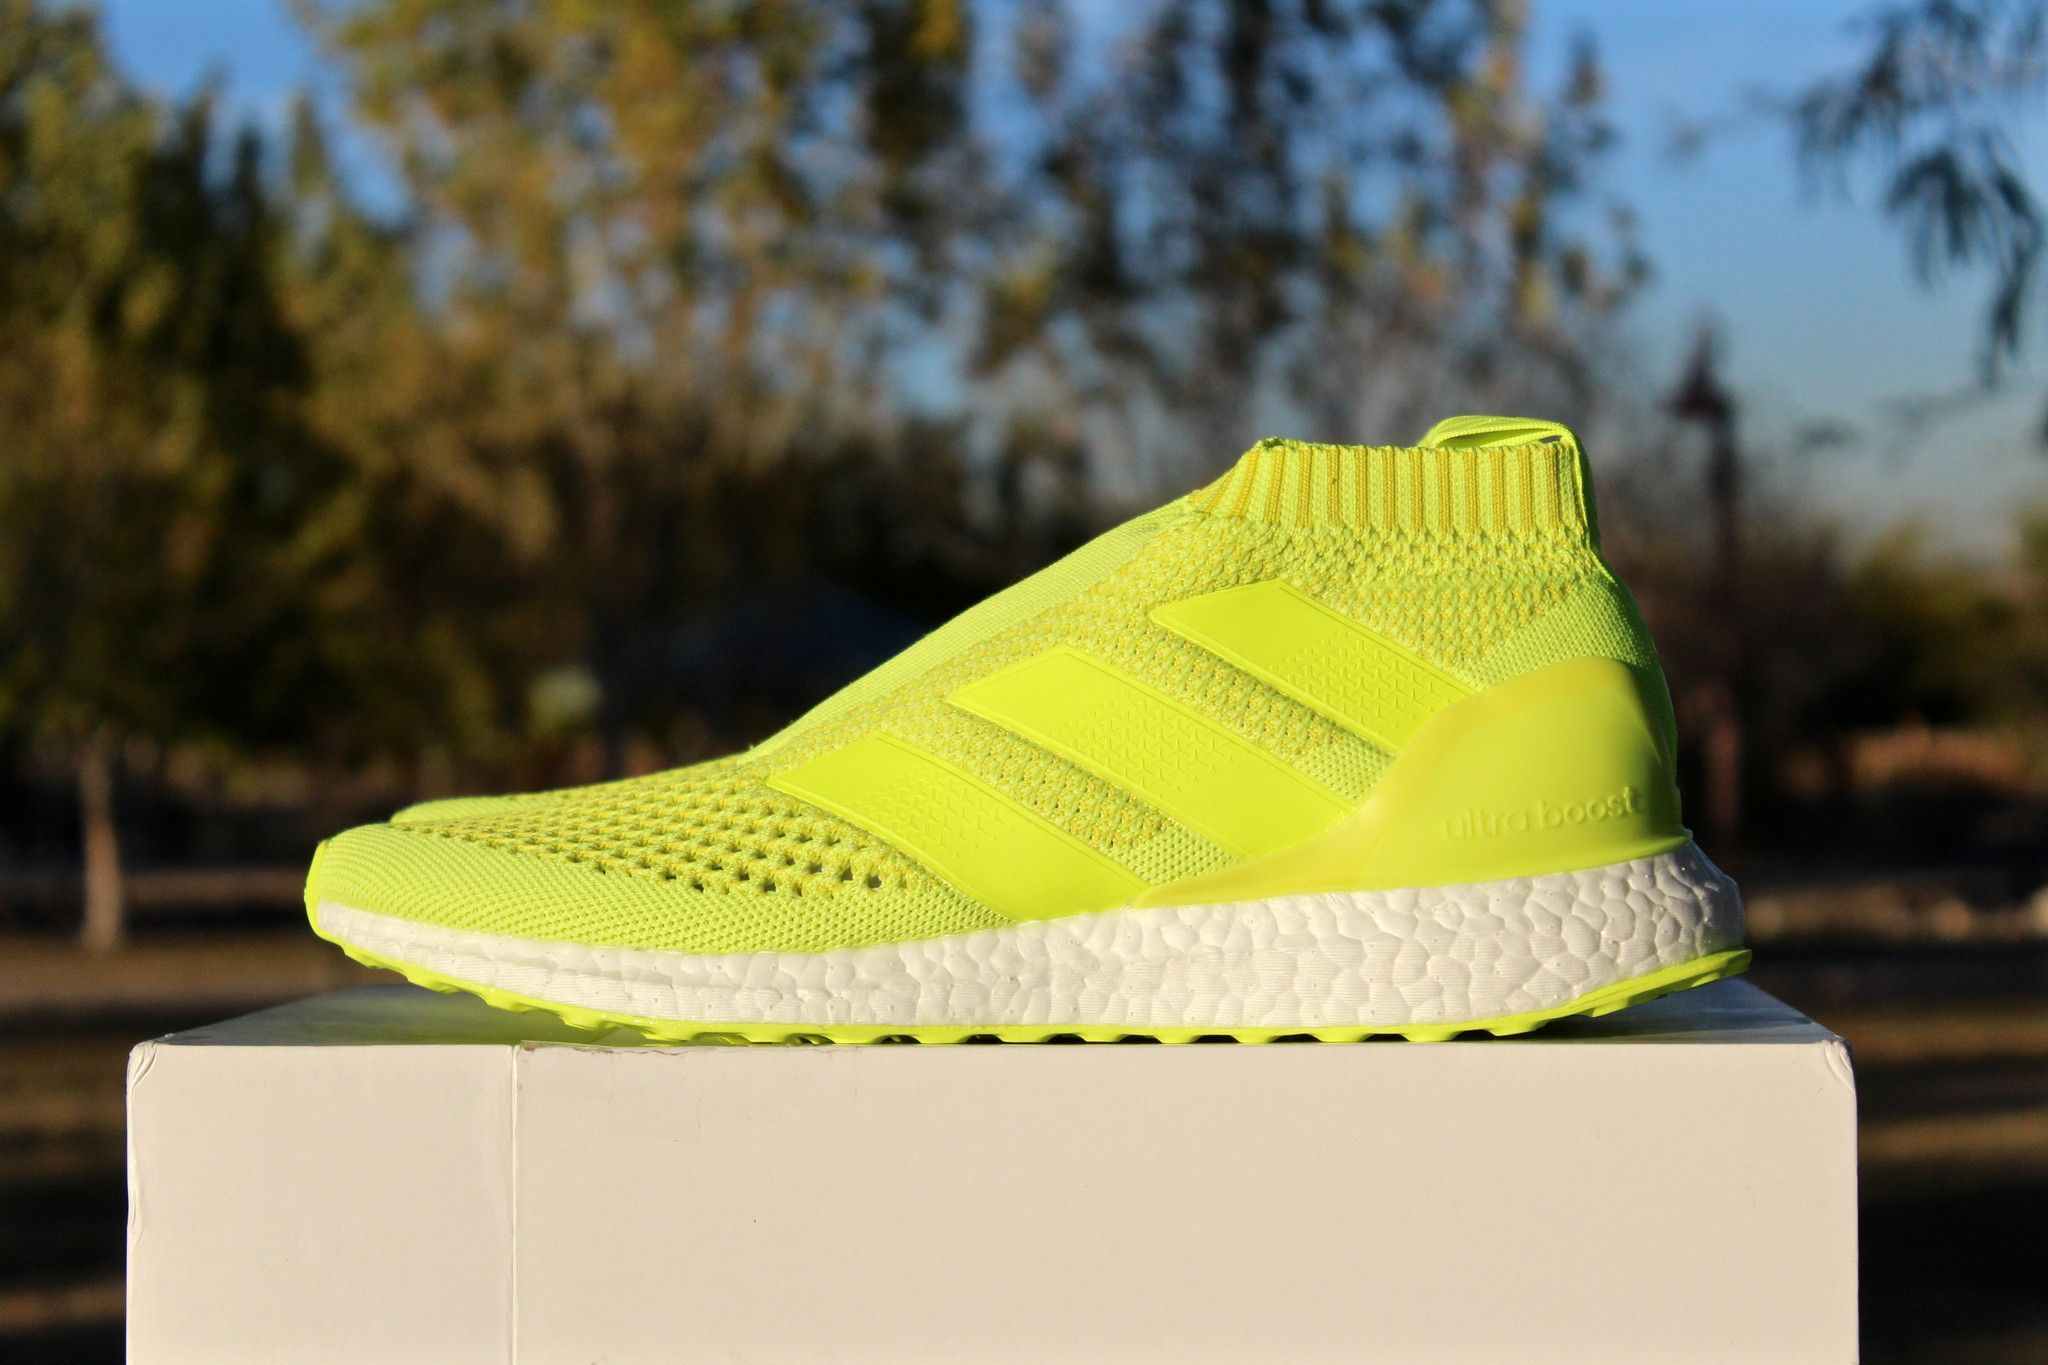 93b244d9a3090 Adidas Ace 16 Purecontrol Ultra boost Triple White from